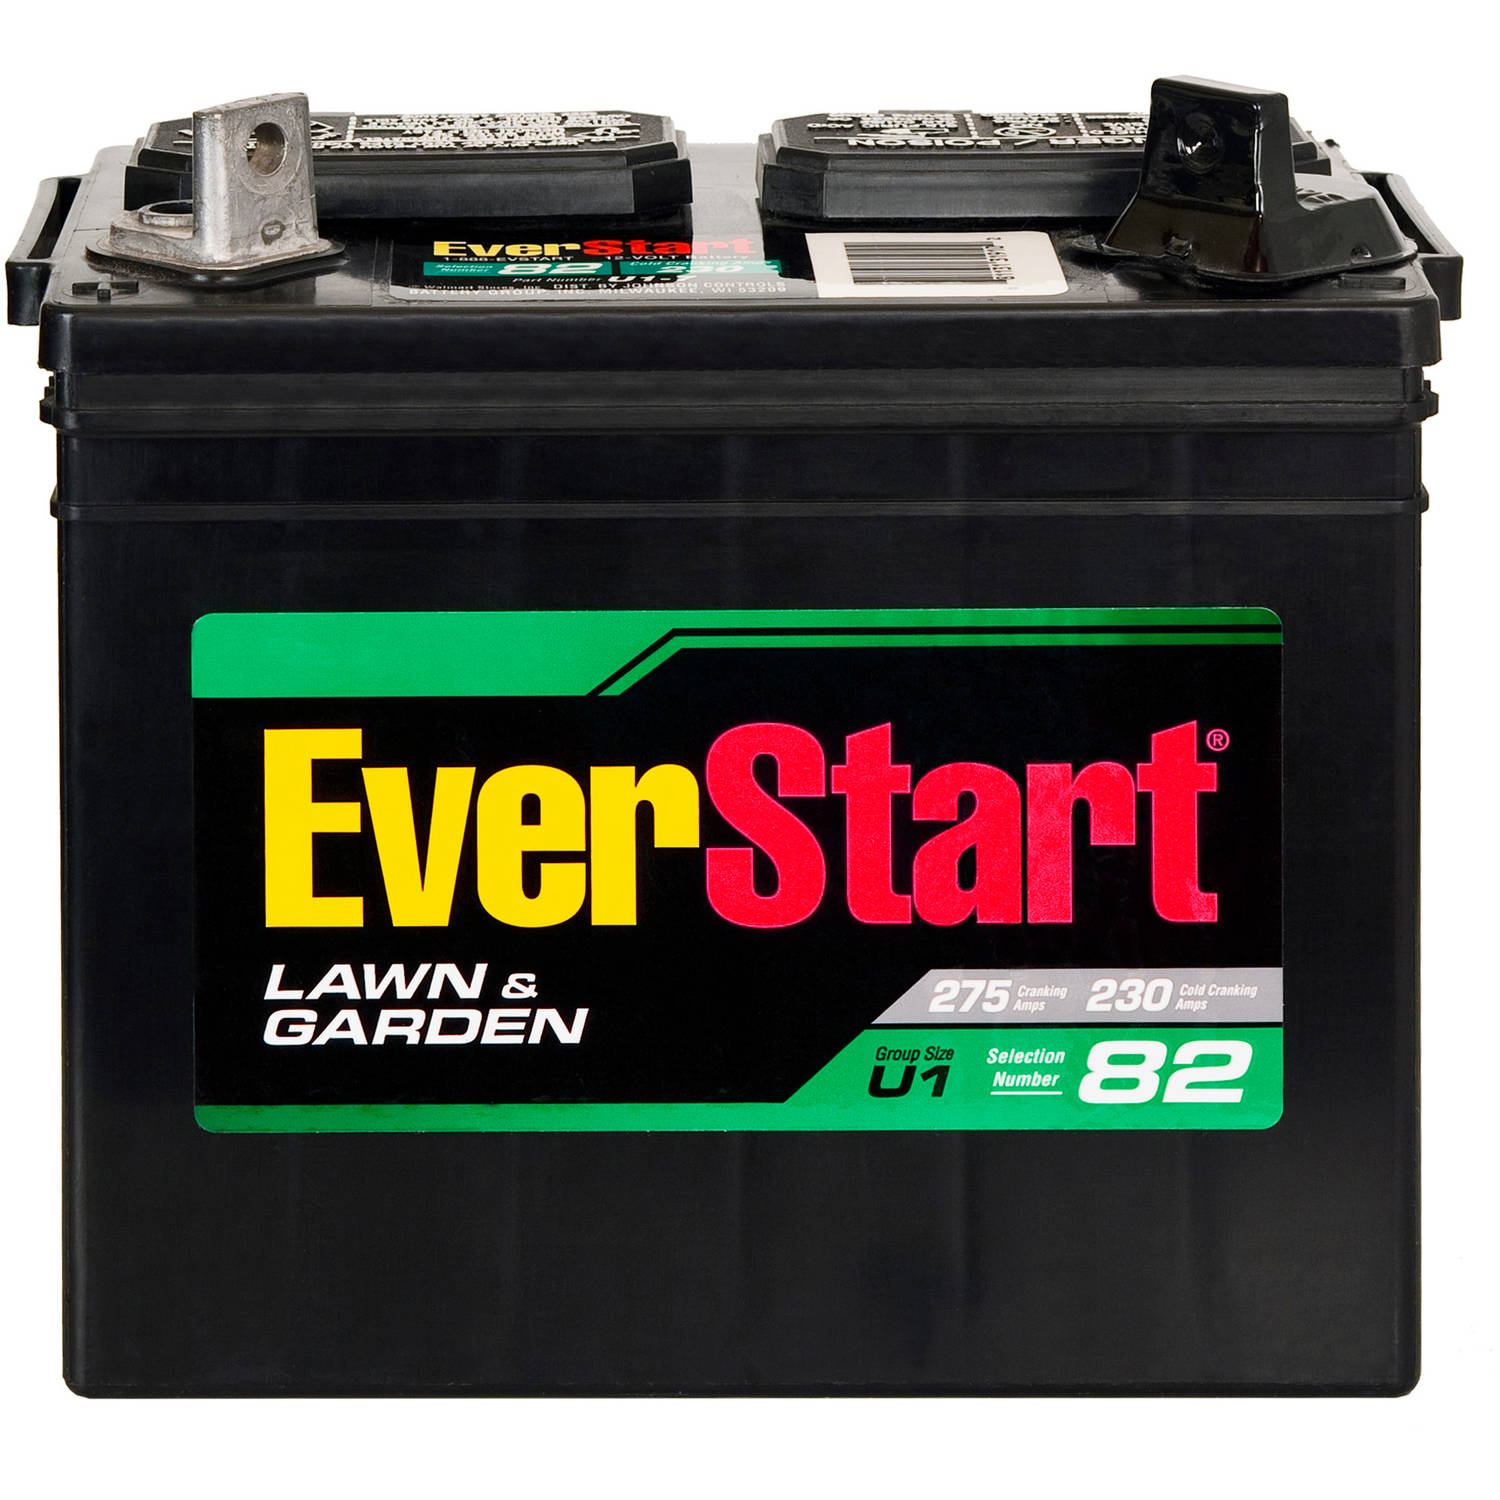 Magna Power Volt Amp Lawn Mower Battery at Lowe's. For the toughest, outdoor use that requires batteries to deliver plenty of cranking amps to power tractors and .